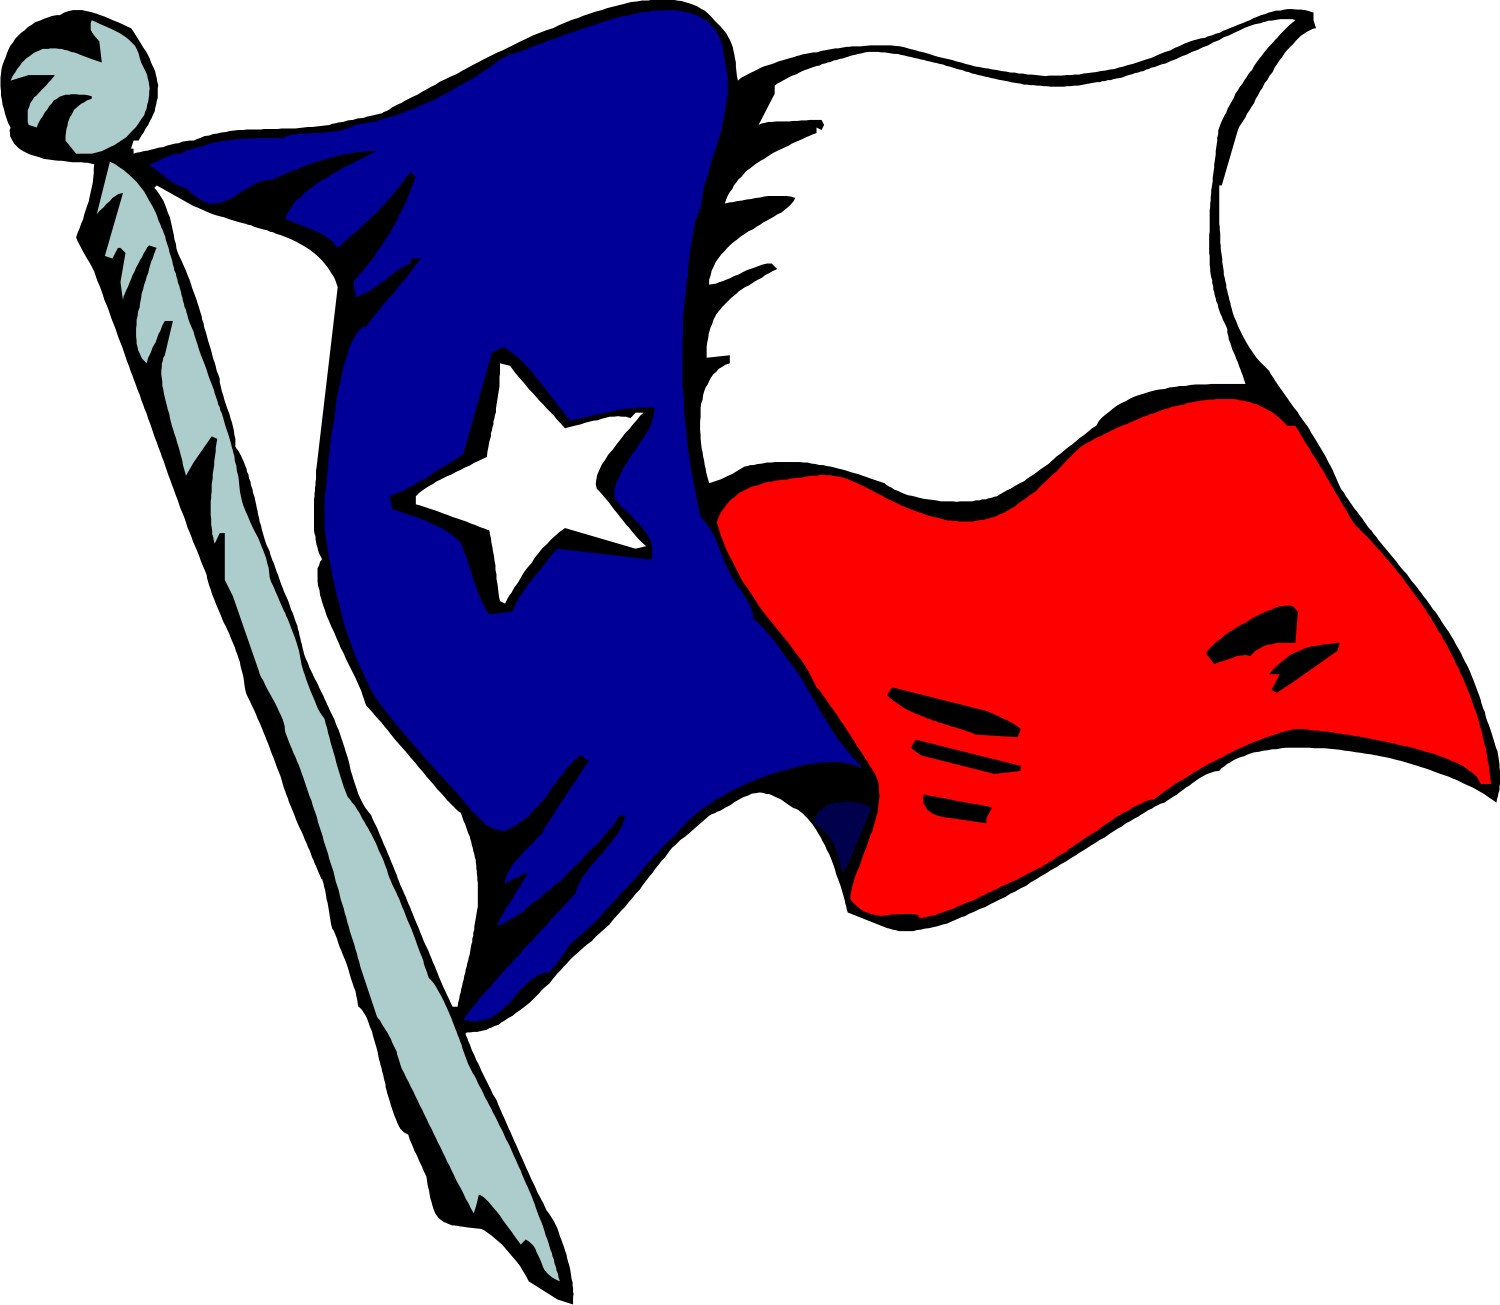 1500x1305 Texas Outline Clipart Free Images 4